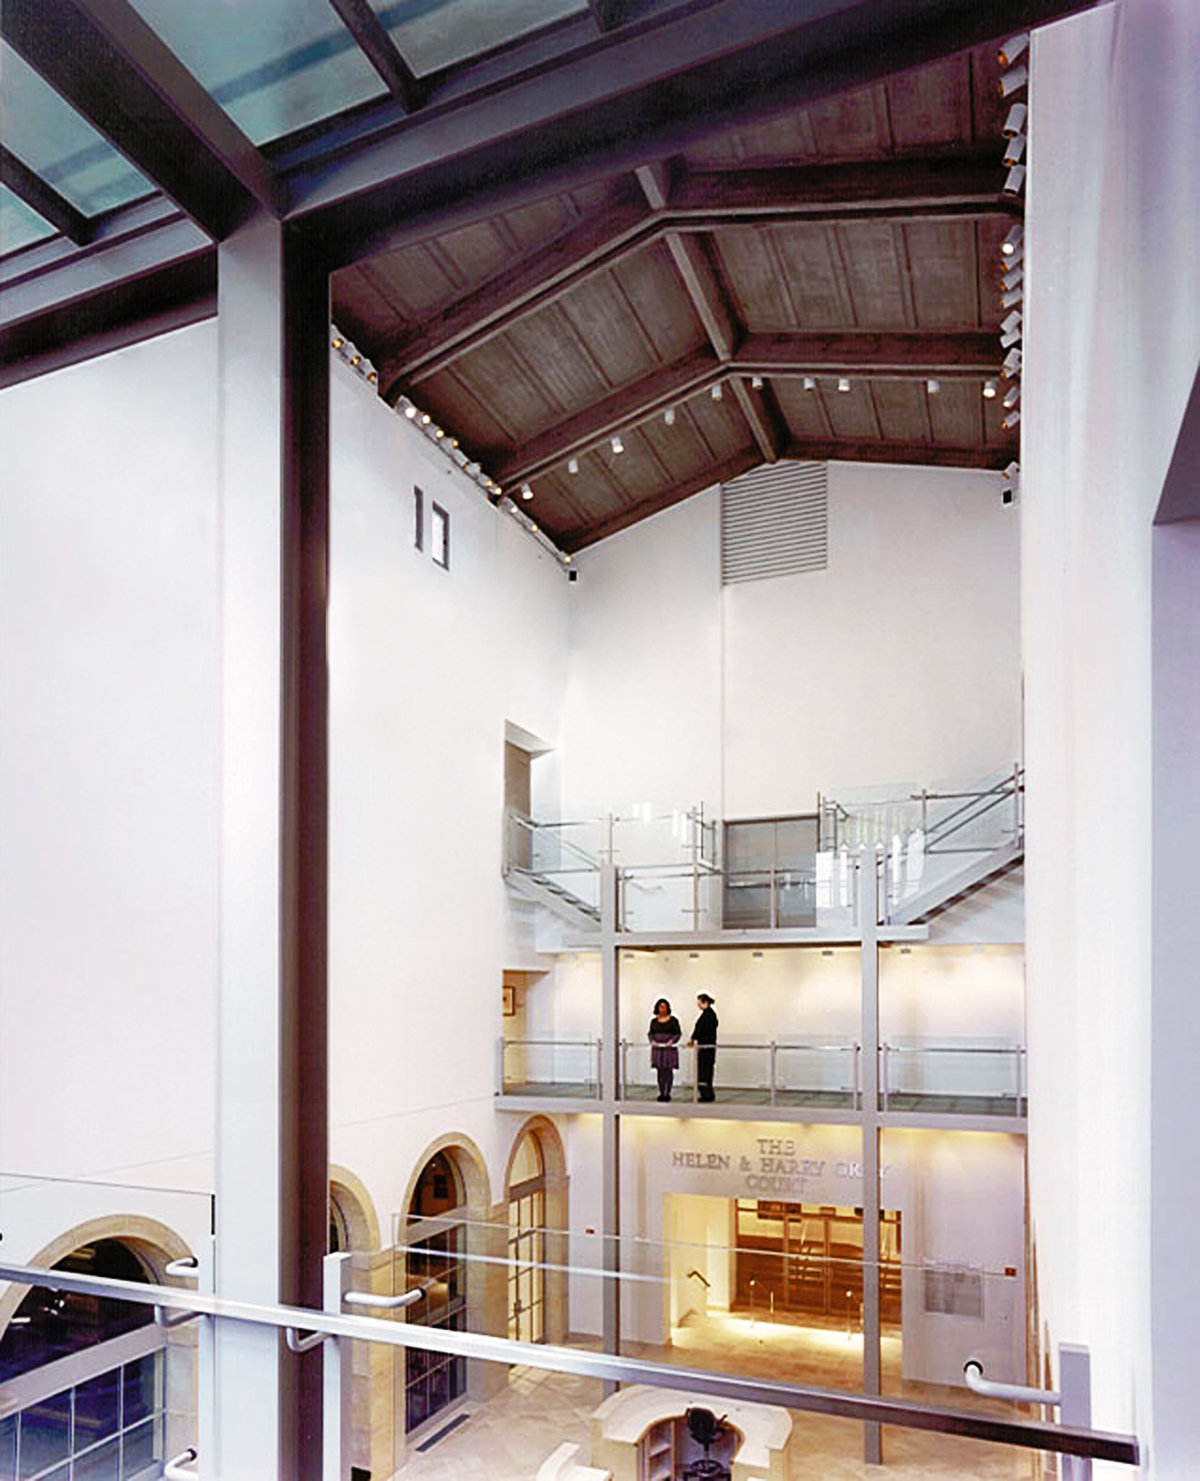 2 tskp wadsworth atheneum the helen and harry gray court glass bridges above court 1400 0x0x1200x1481 q85